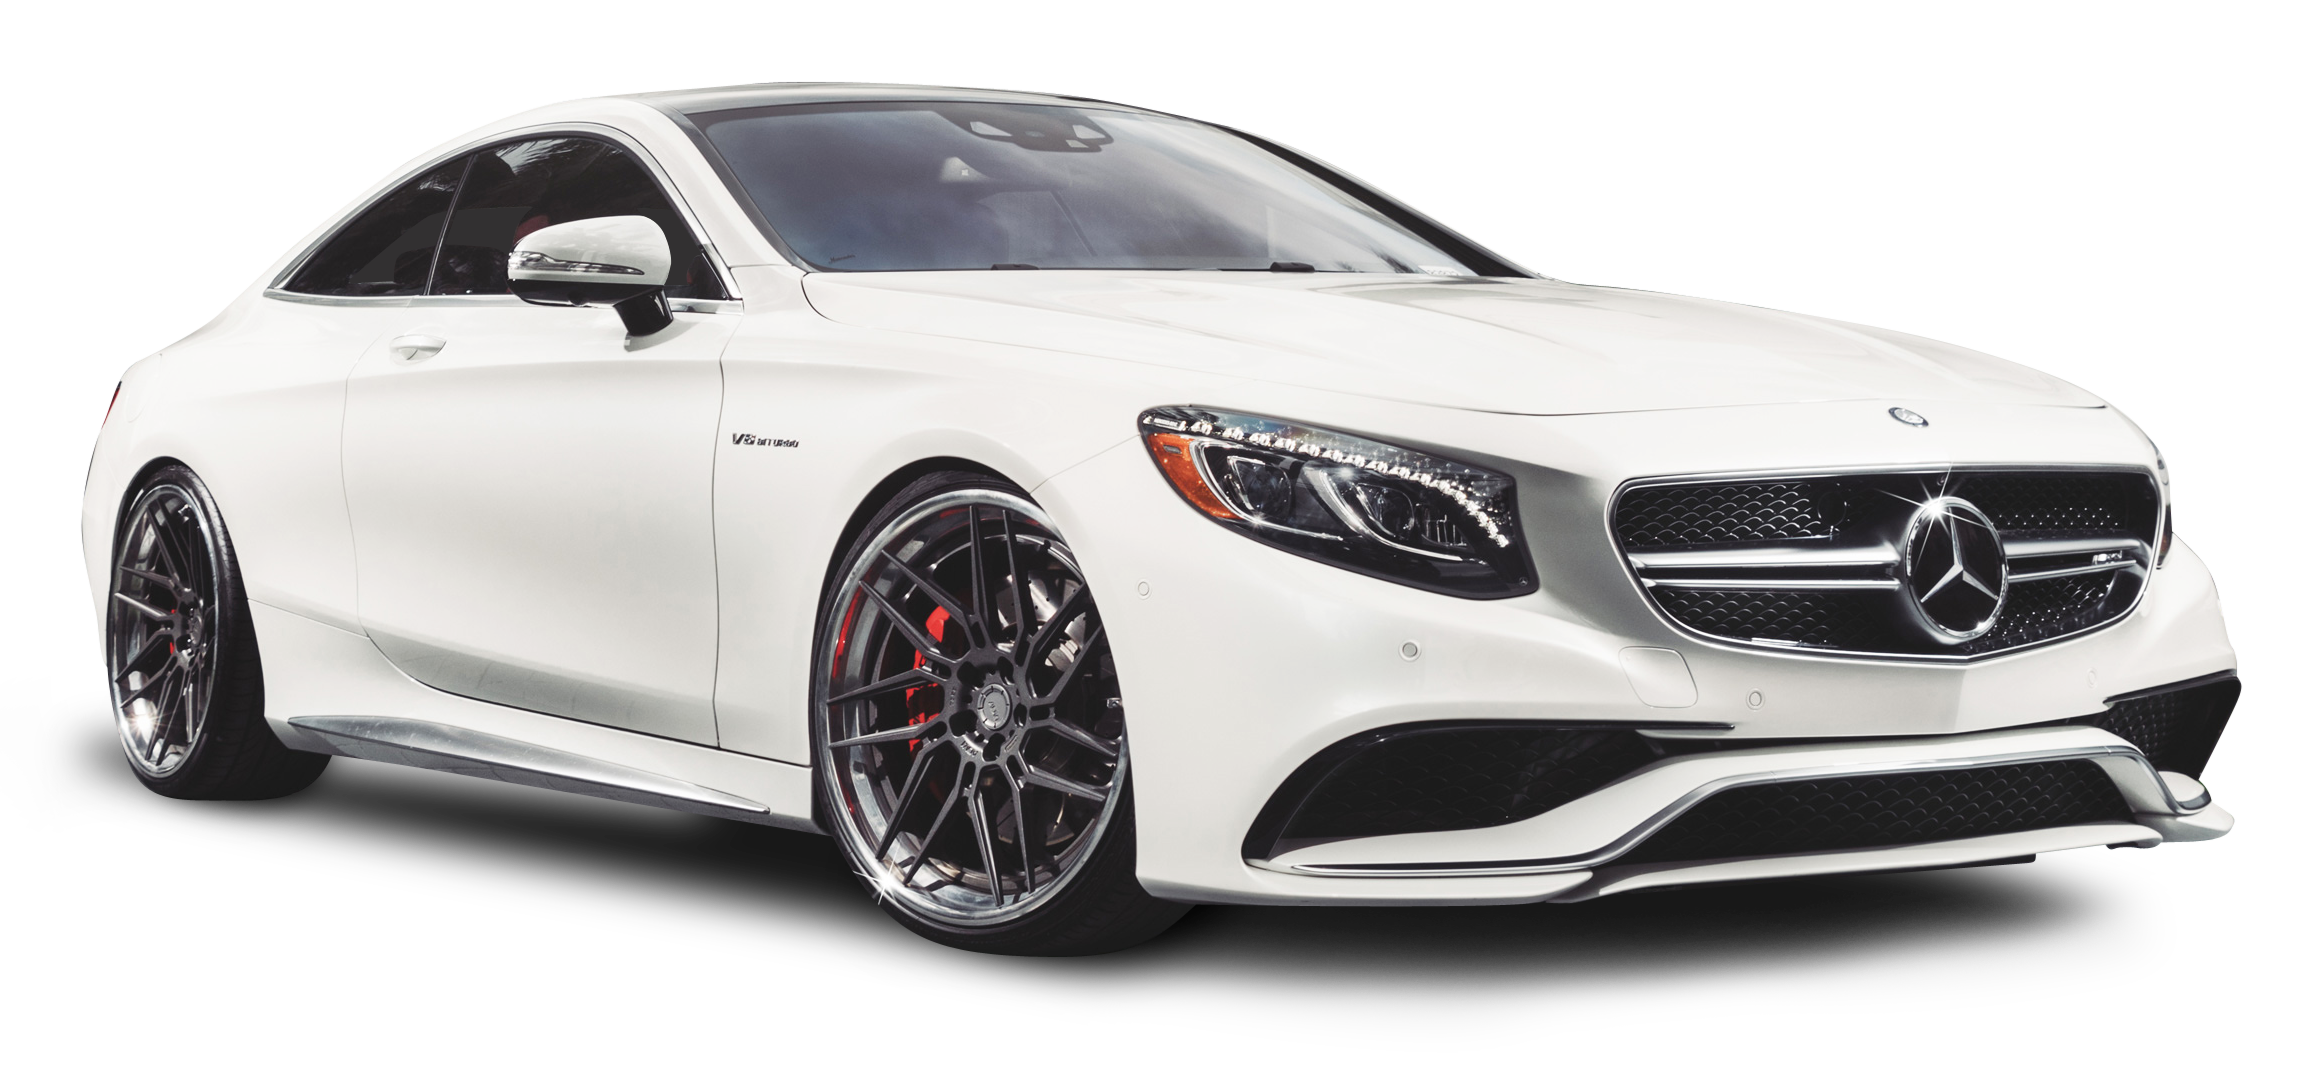 Mercedes Benz S63 AMG White Car PNG Image